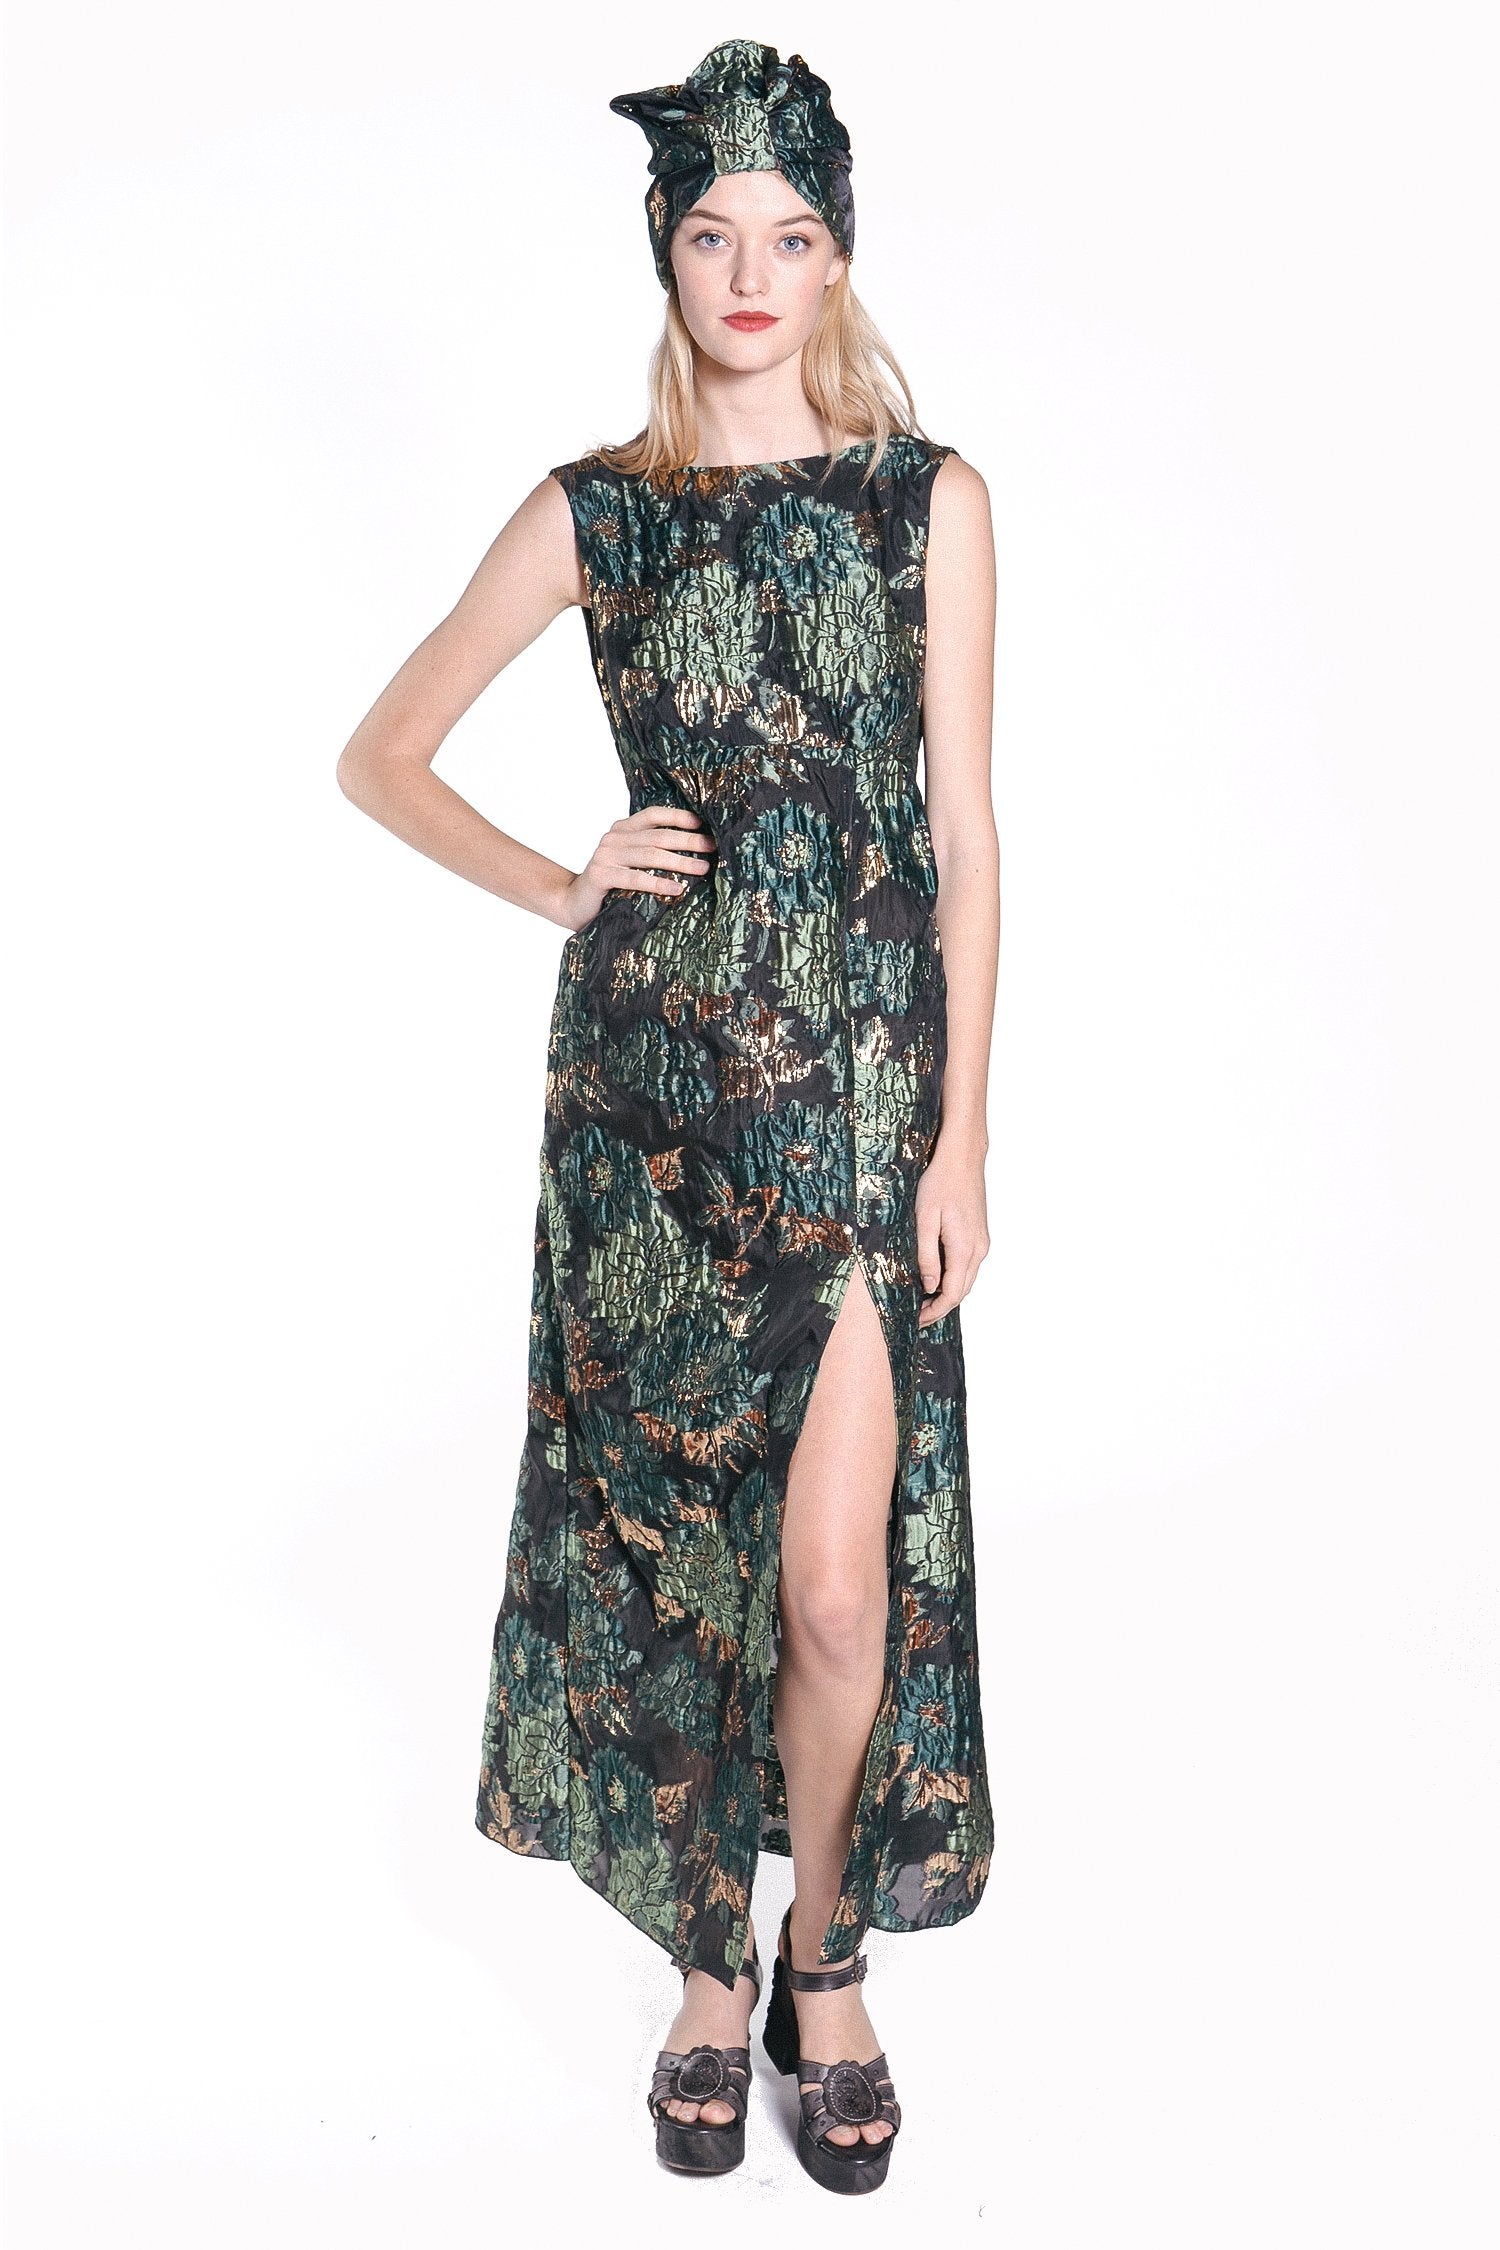 Malachite Peonies Lurex Dress - Anna Sui